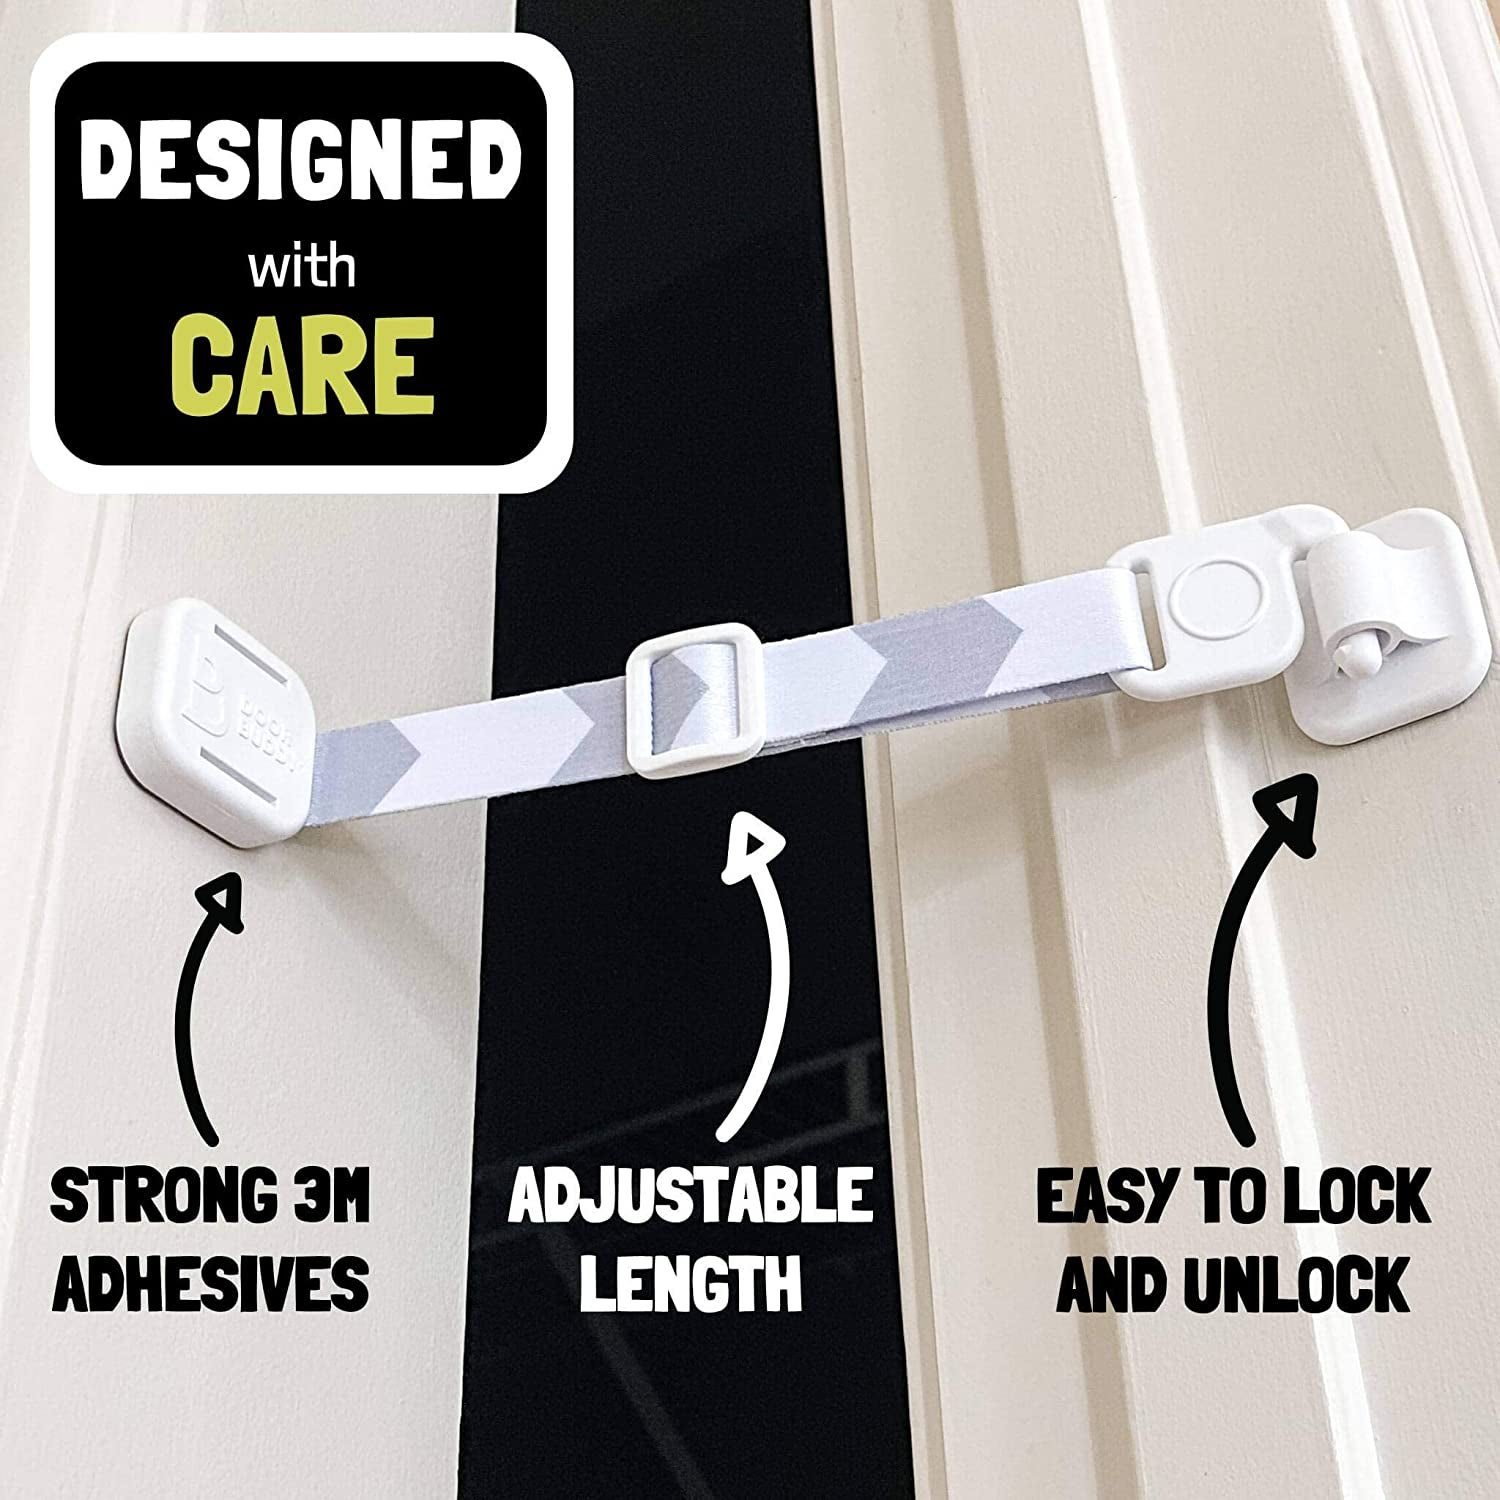 The door latch with text on the image that says